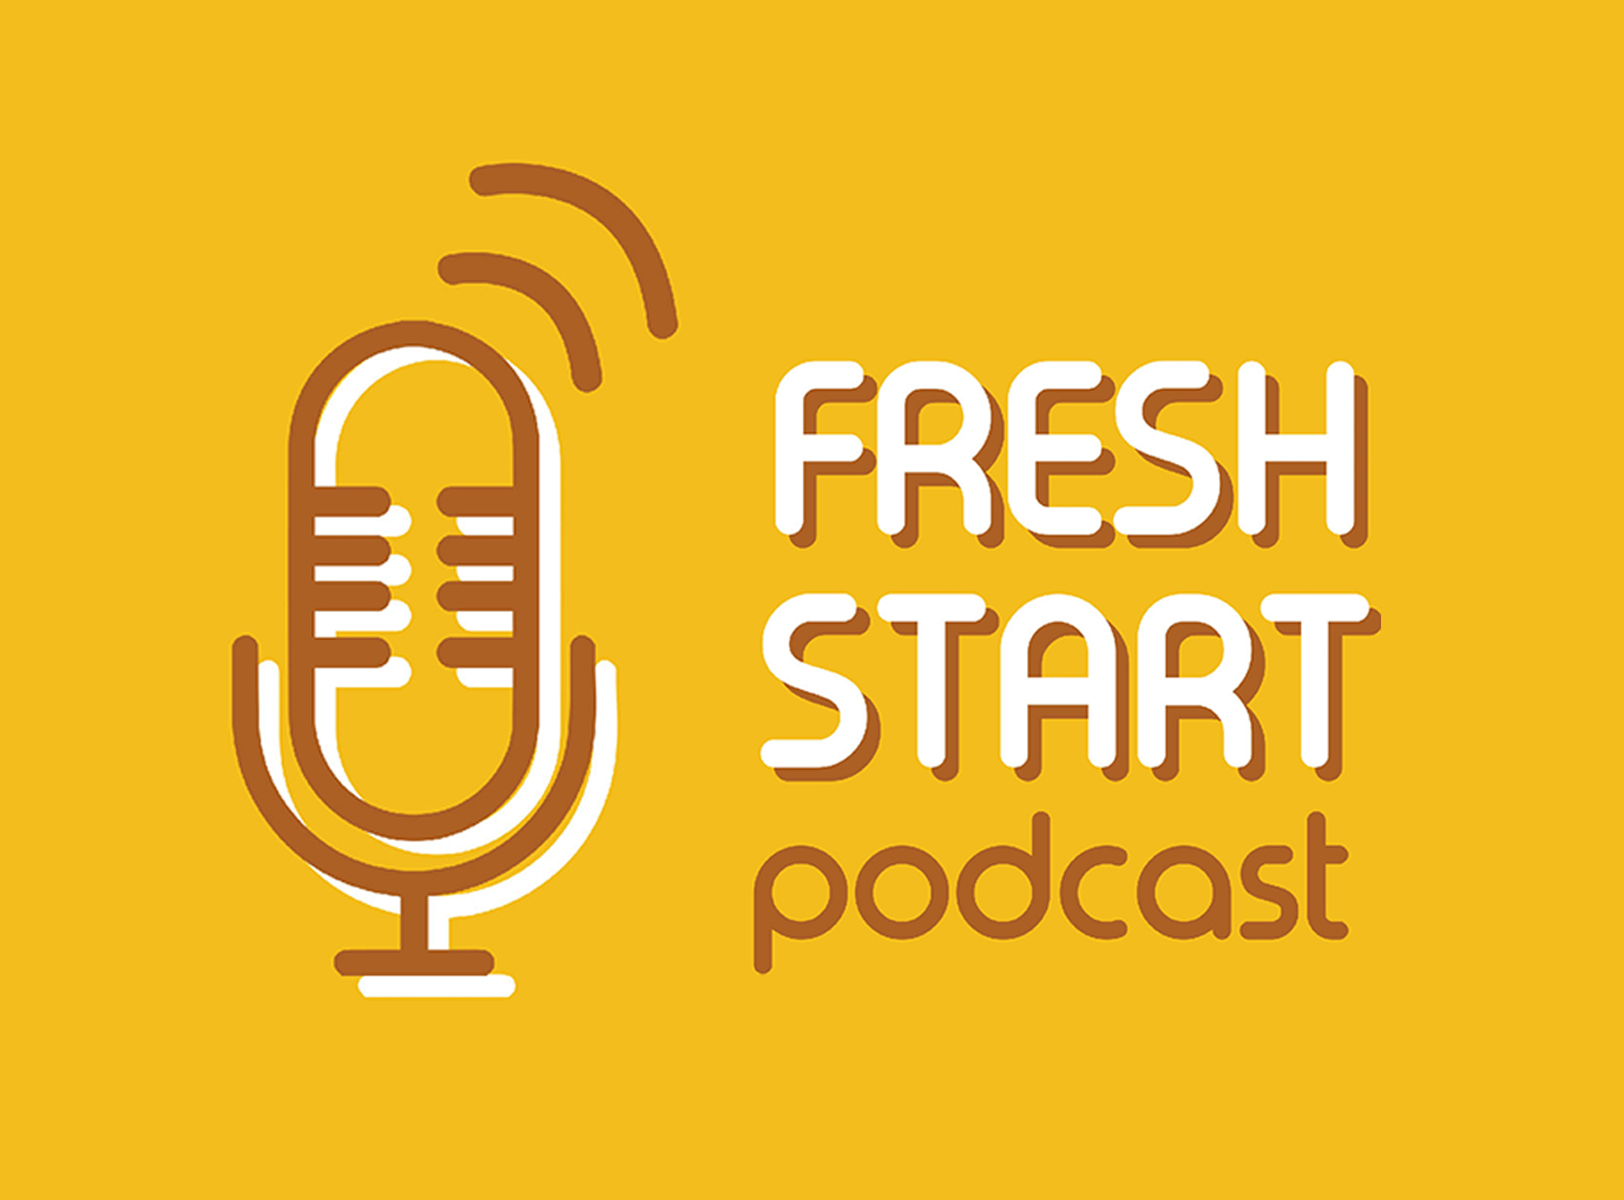 Fresh Start: Podcast News (8/21/2018 Tue.)